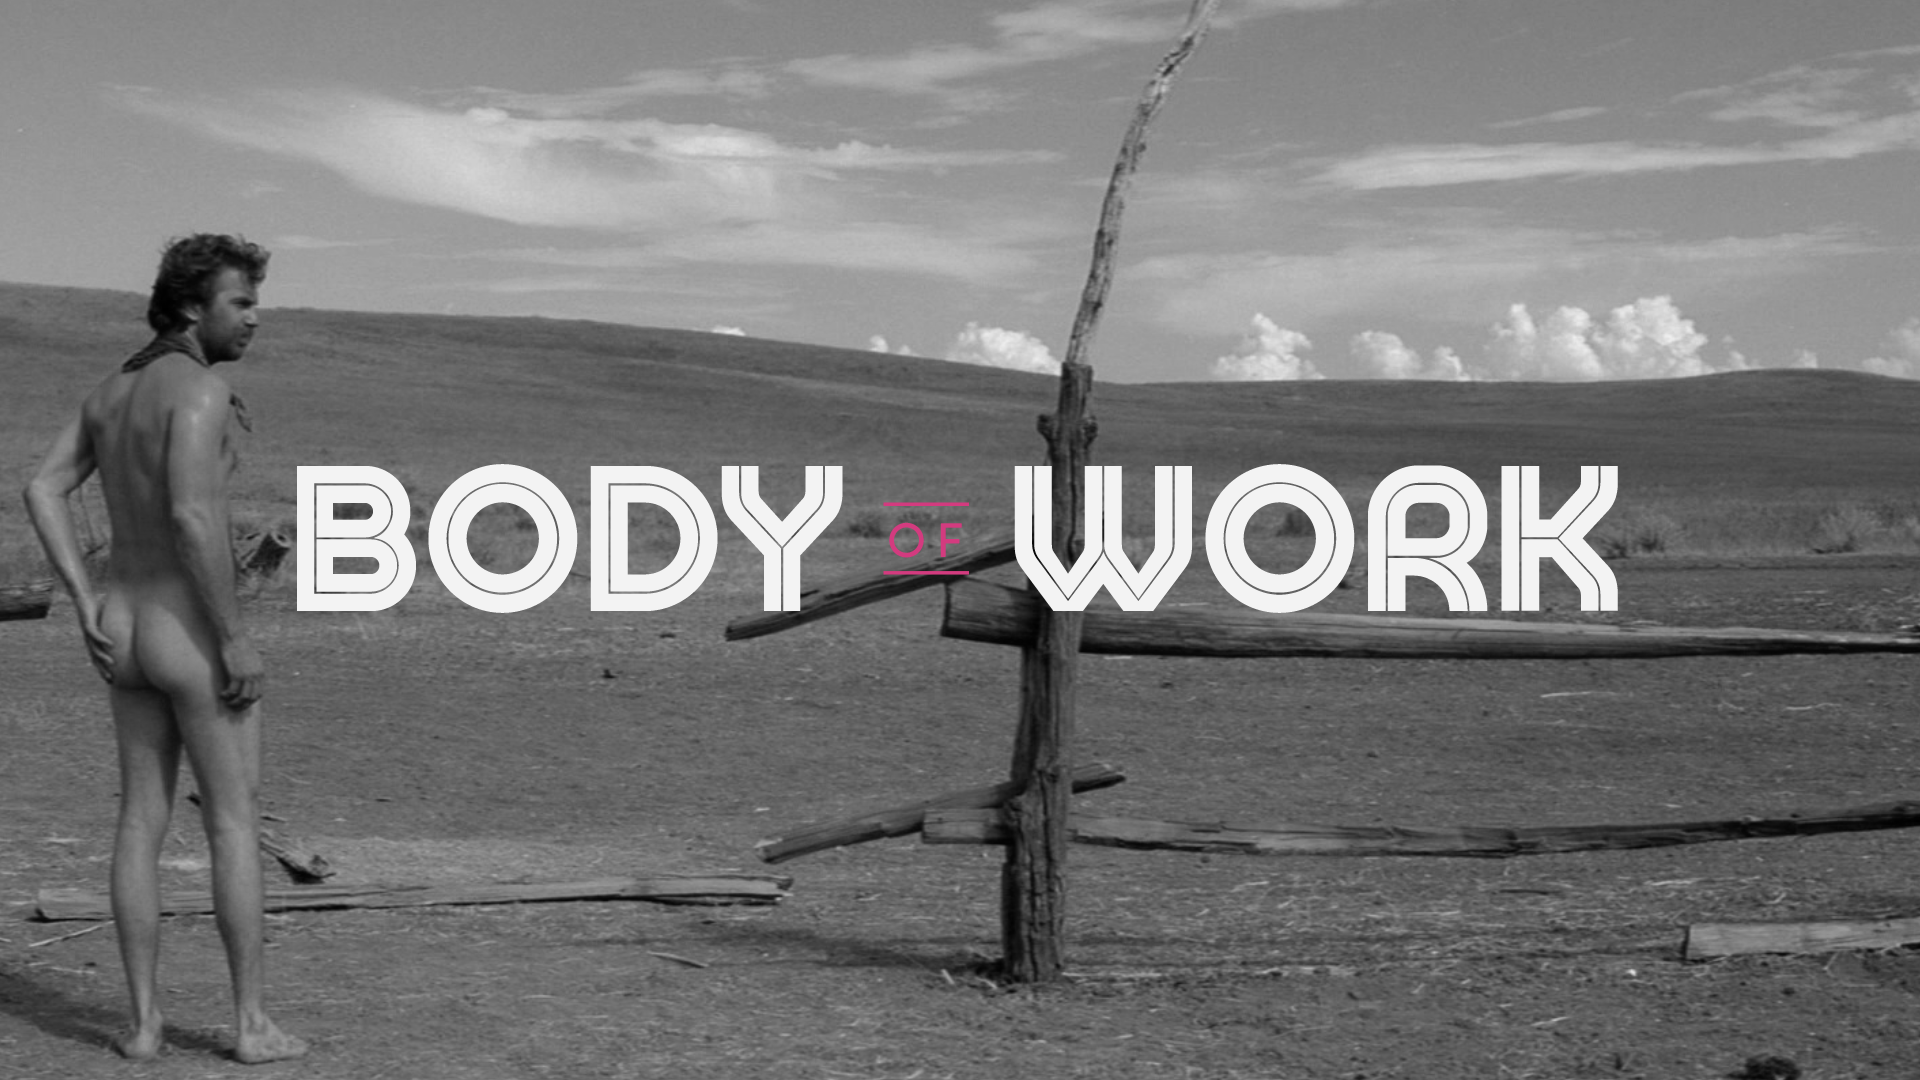 Body of Work: Kevin Costner